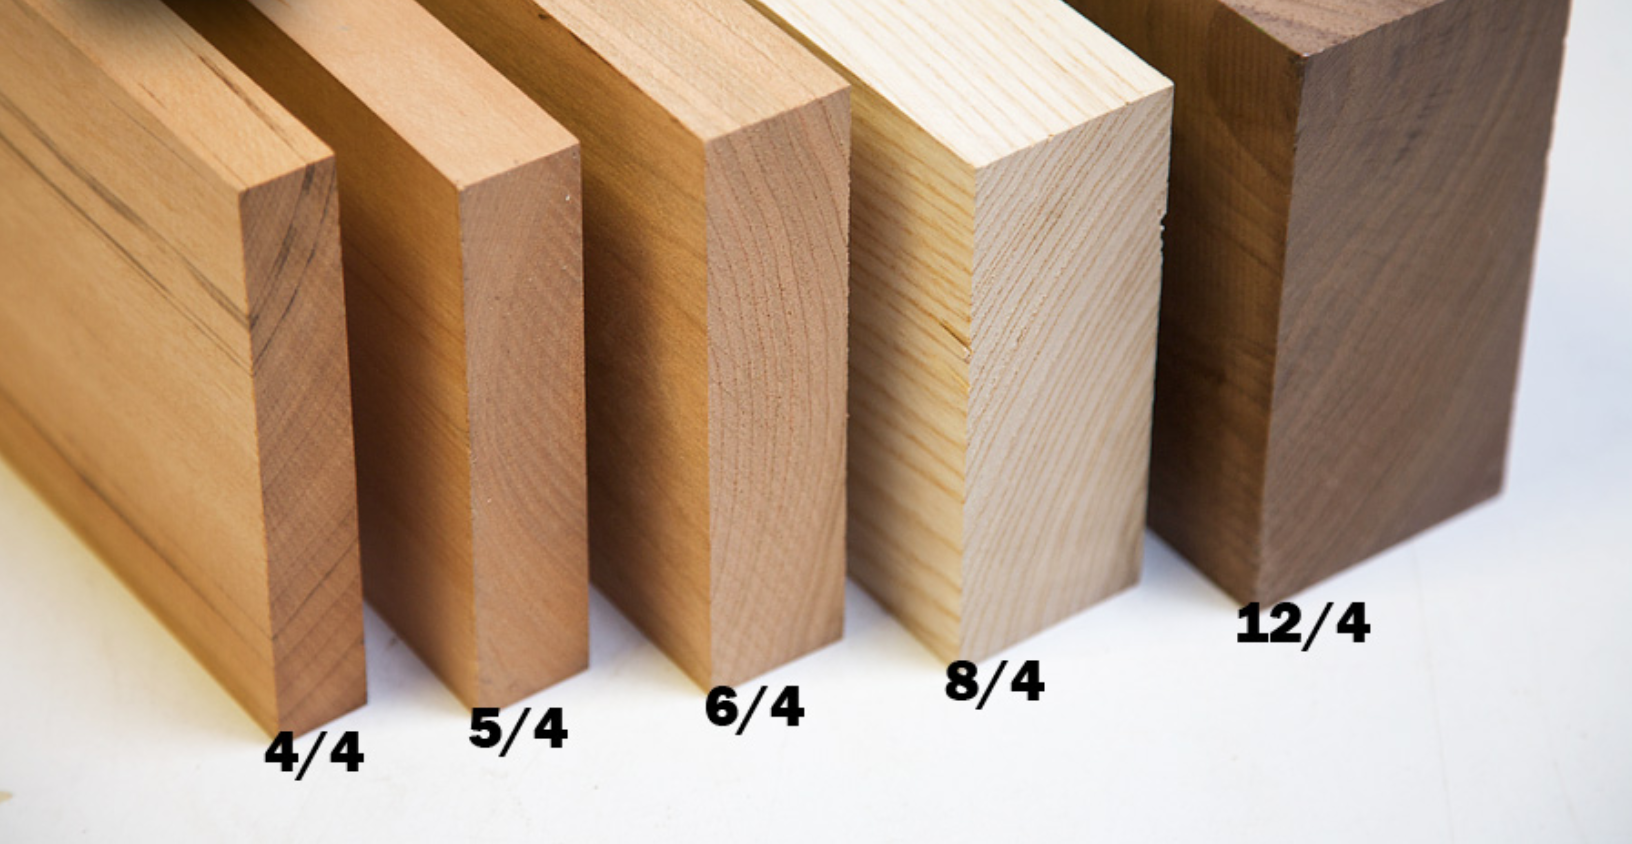 Source: woodworkerssource.com